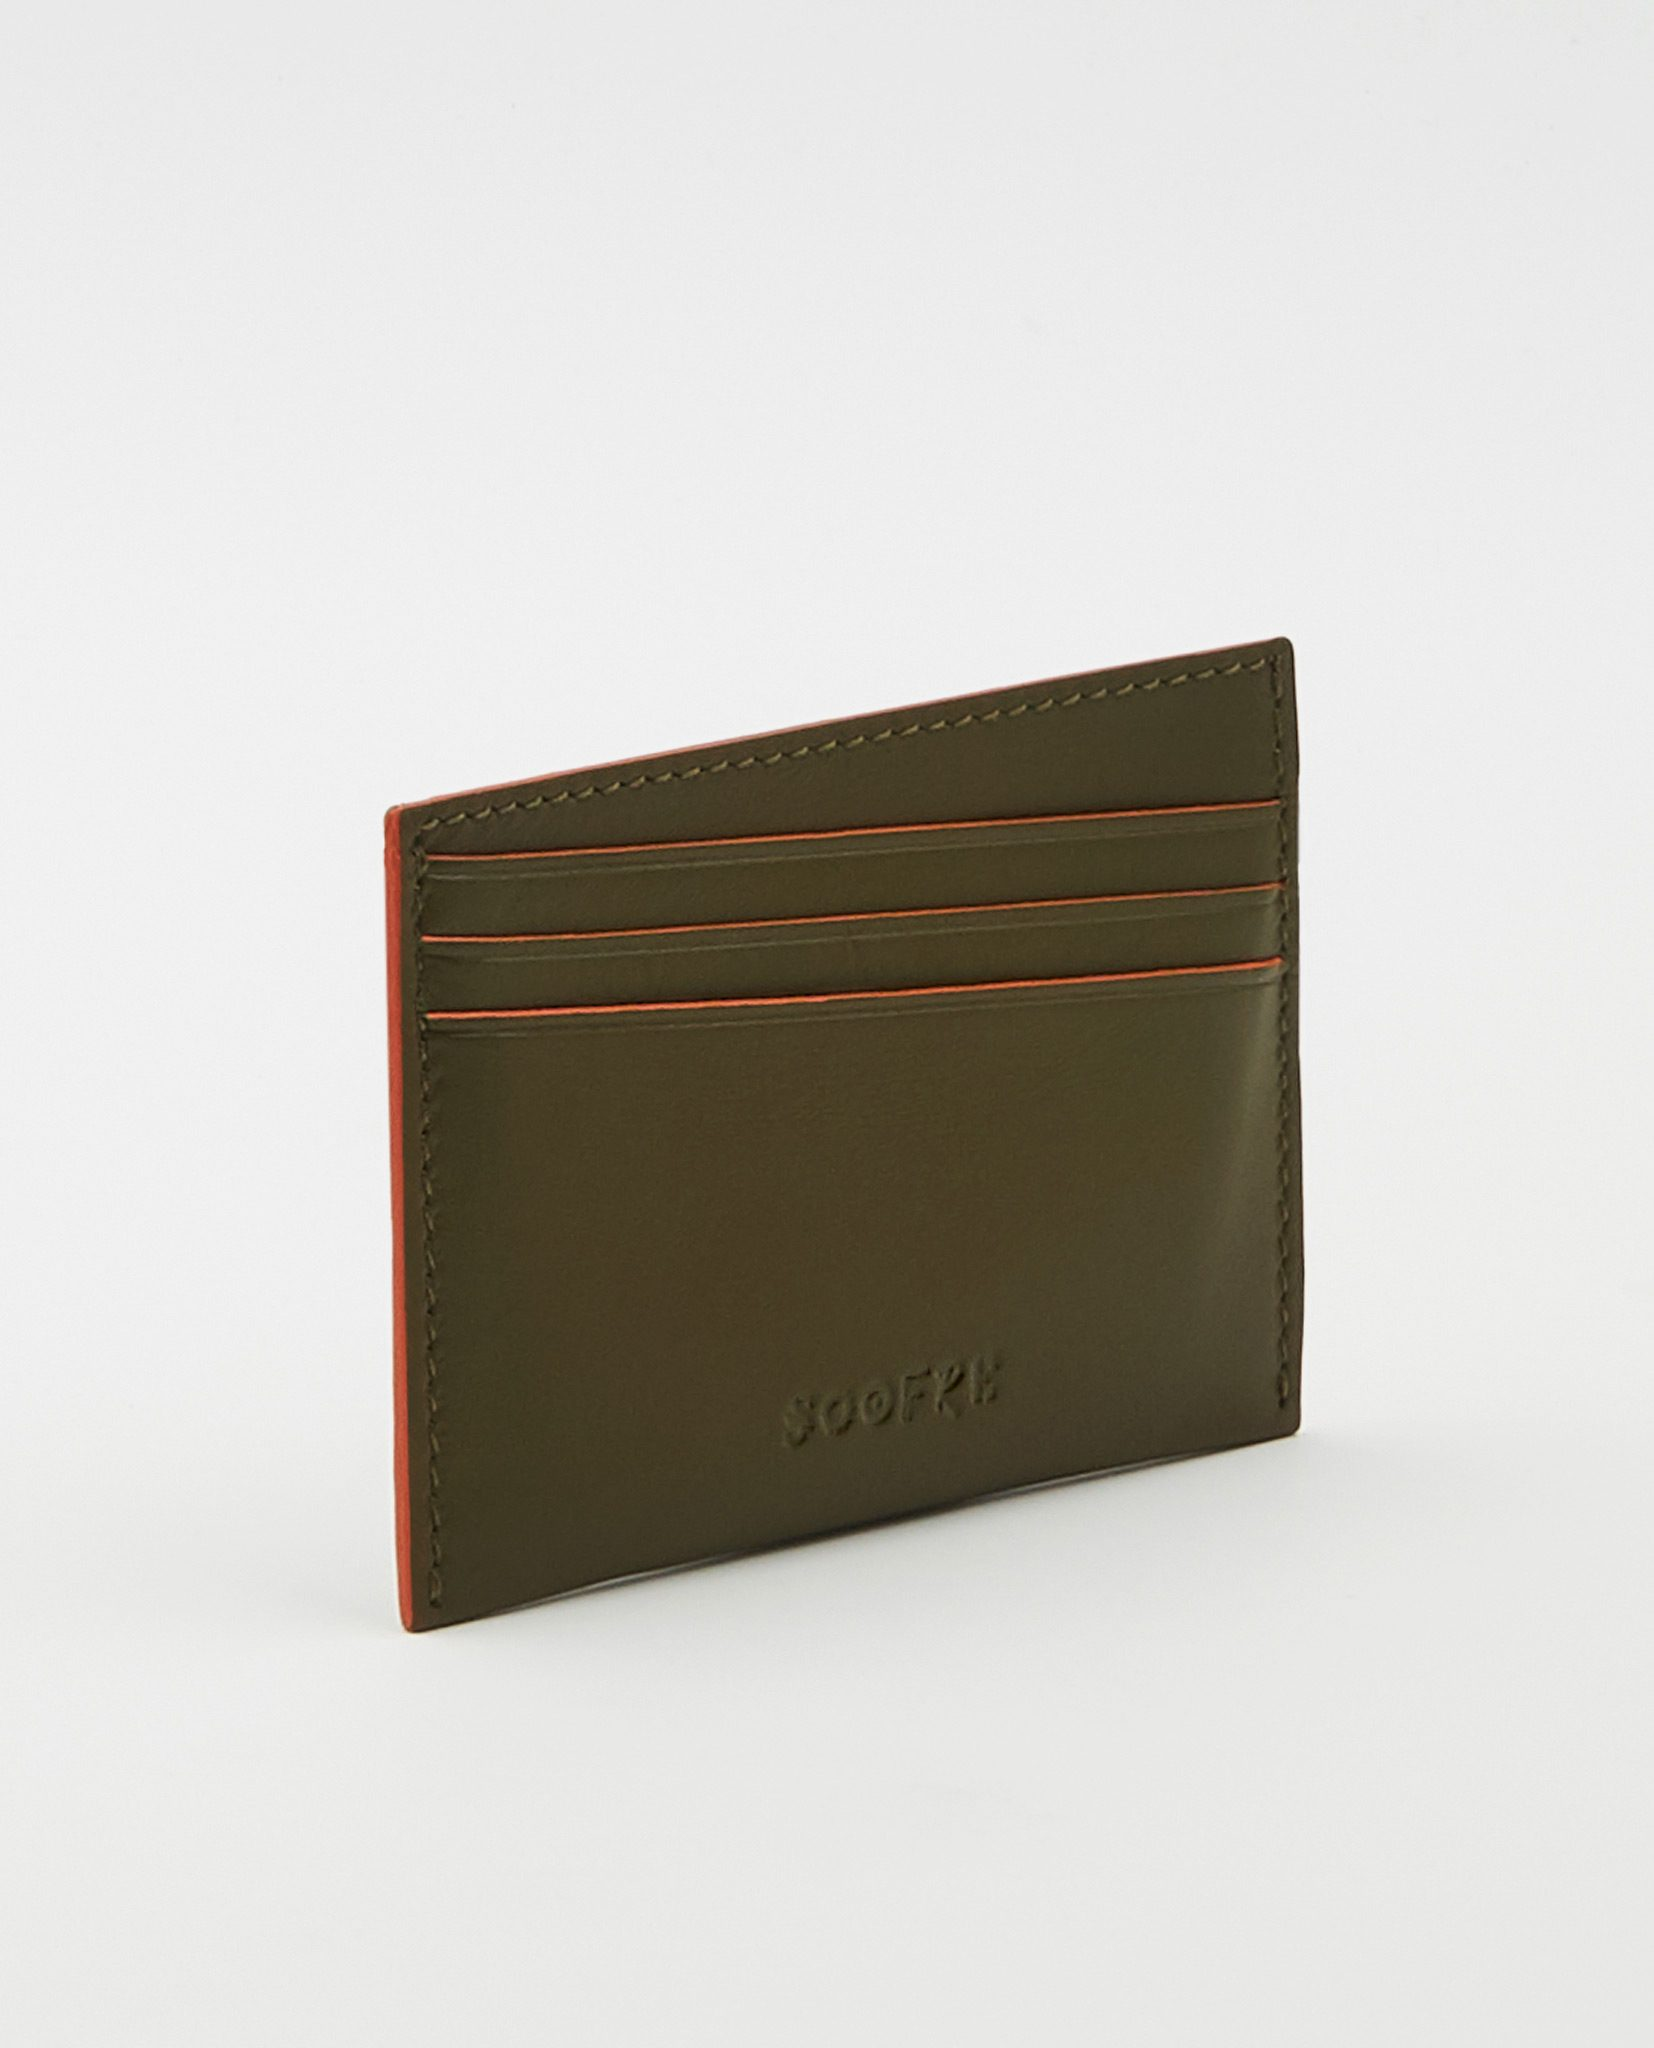 Soofre Card Holder Smooth Leather Khaki Orange